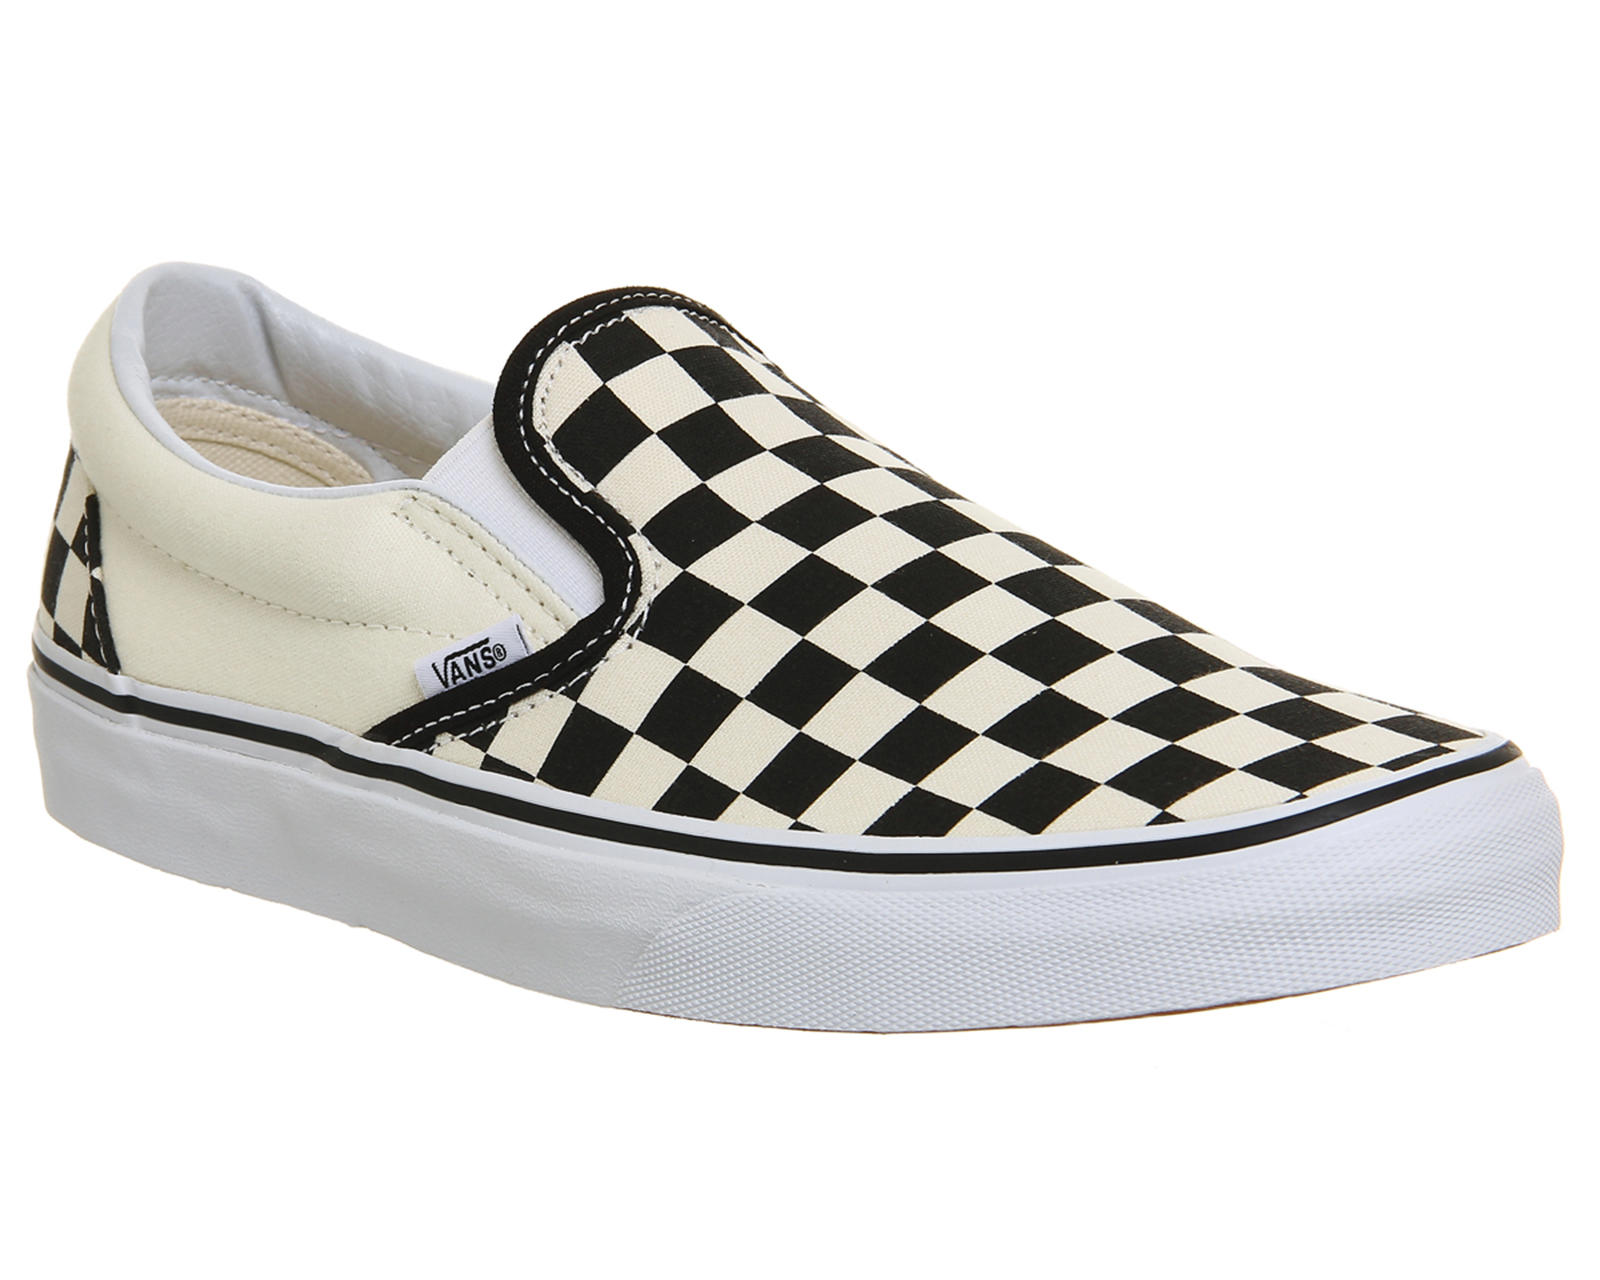 f983ca54ac137b Sentinel Mens Vans Classic Slip On Trainers Black White Check Trainers Shoes